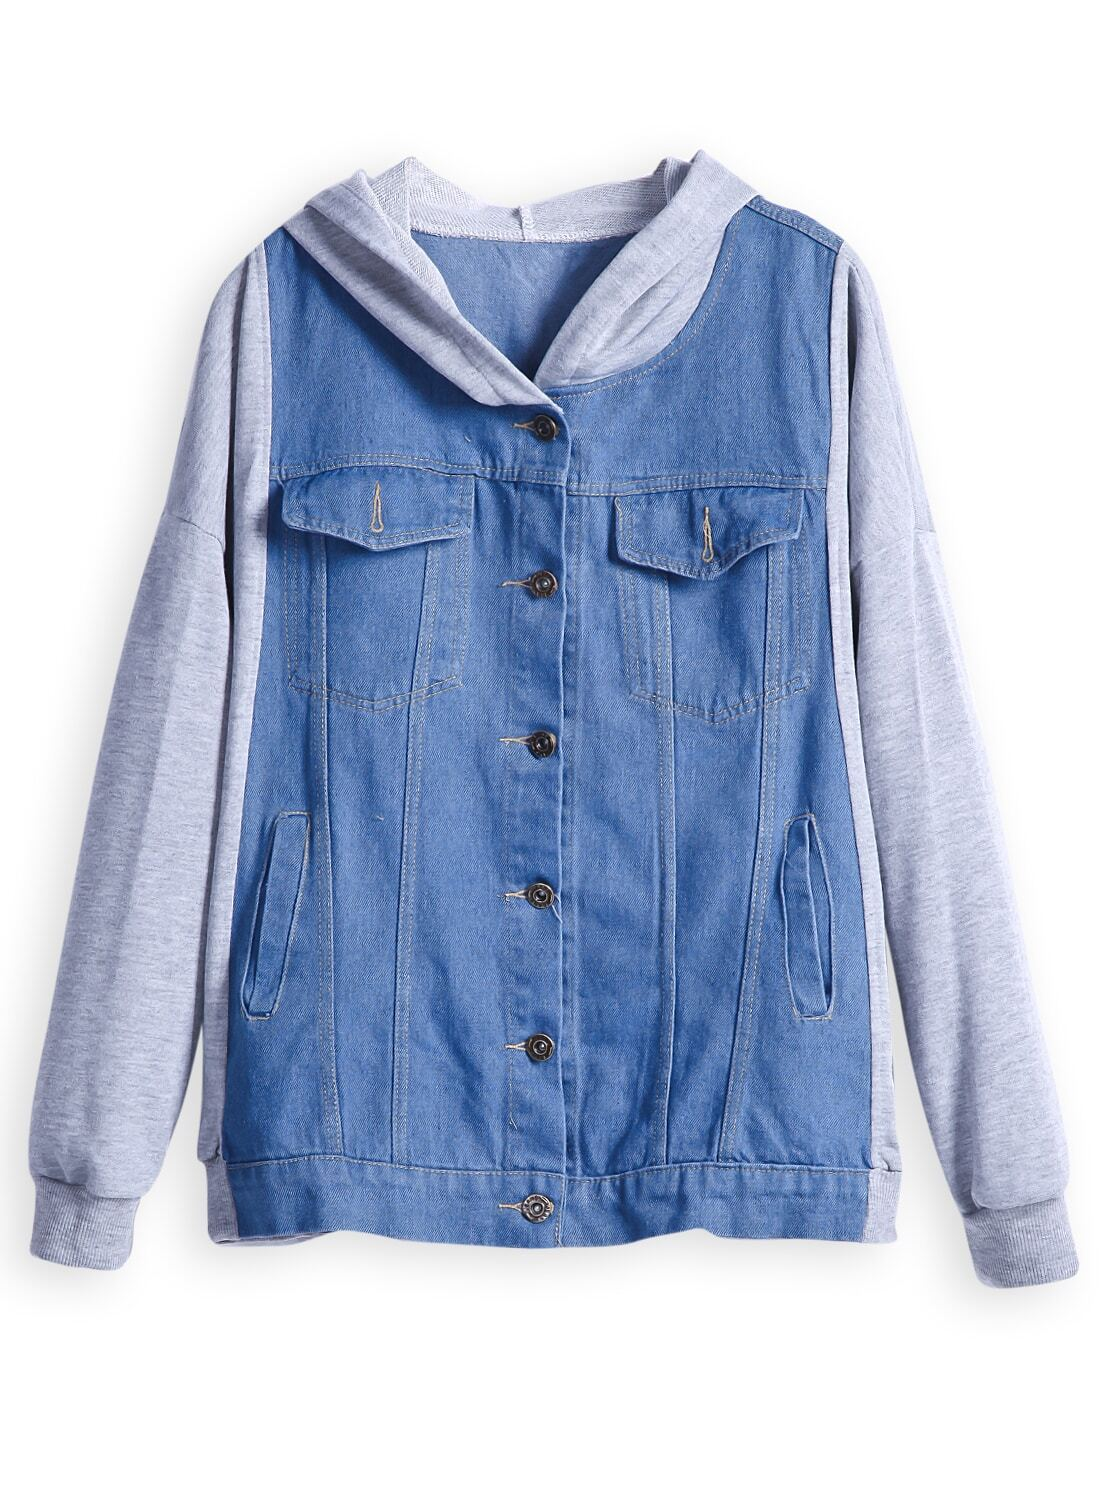 Find great deals on eBay for blue long jacket for women. Shop with confidence. Skip to main content. eBay: Shop by category. Women Fashion Cardigan Long Sleeve Blue Denim Jacket Jeans Long Coat Outwear New. Brand New · Unbranded. $ From China. Buy .